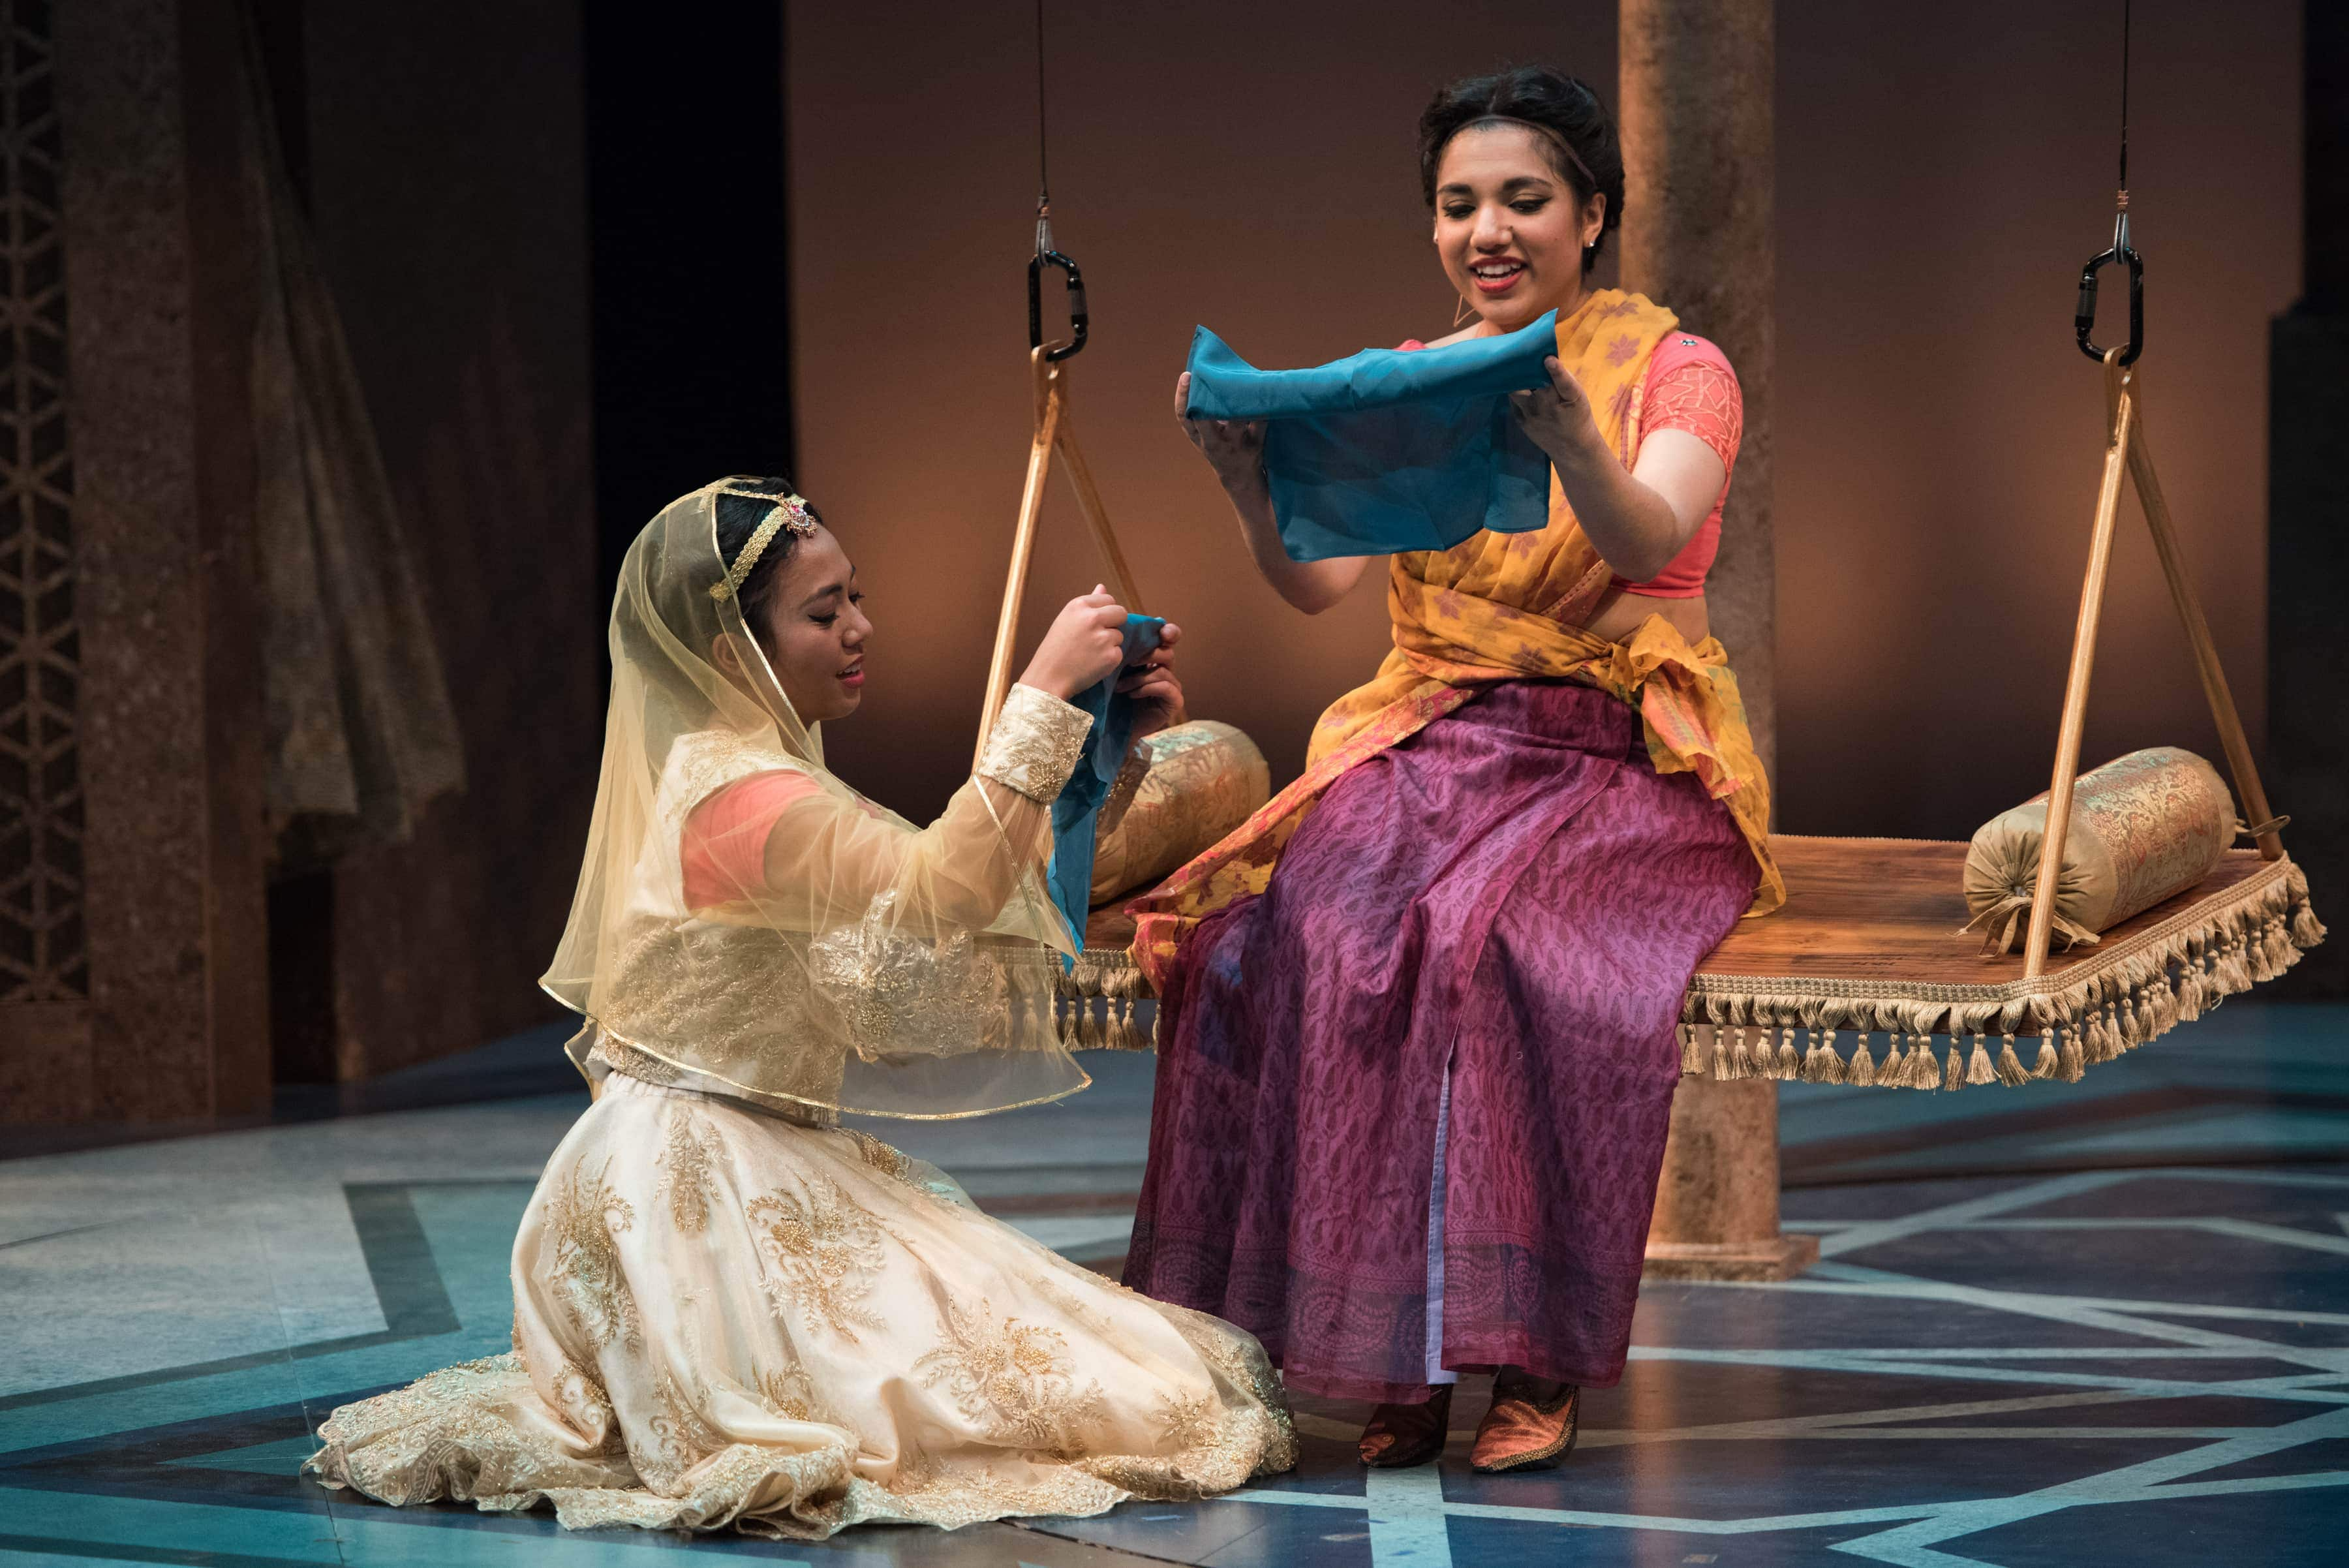 Having switched clothes, Princess Razia and Rani exchange scarves. (L-R: Alexandra Palting, Anjna Swaminathan). Photo by Margot Schulman.